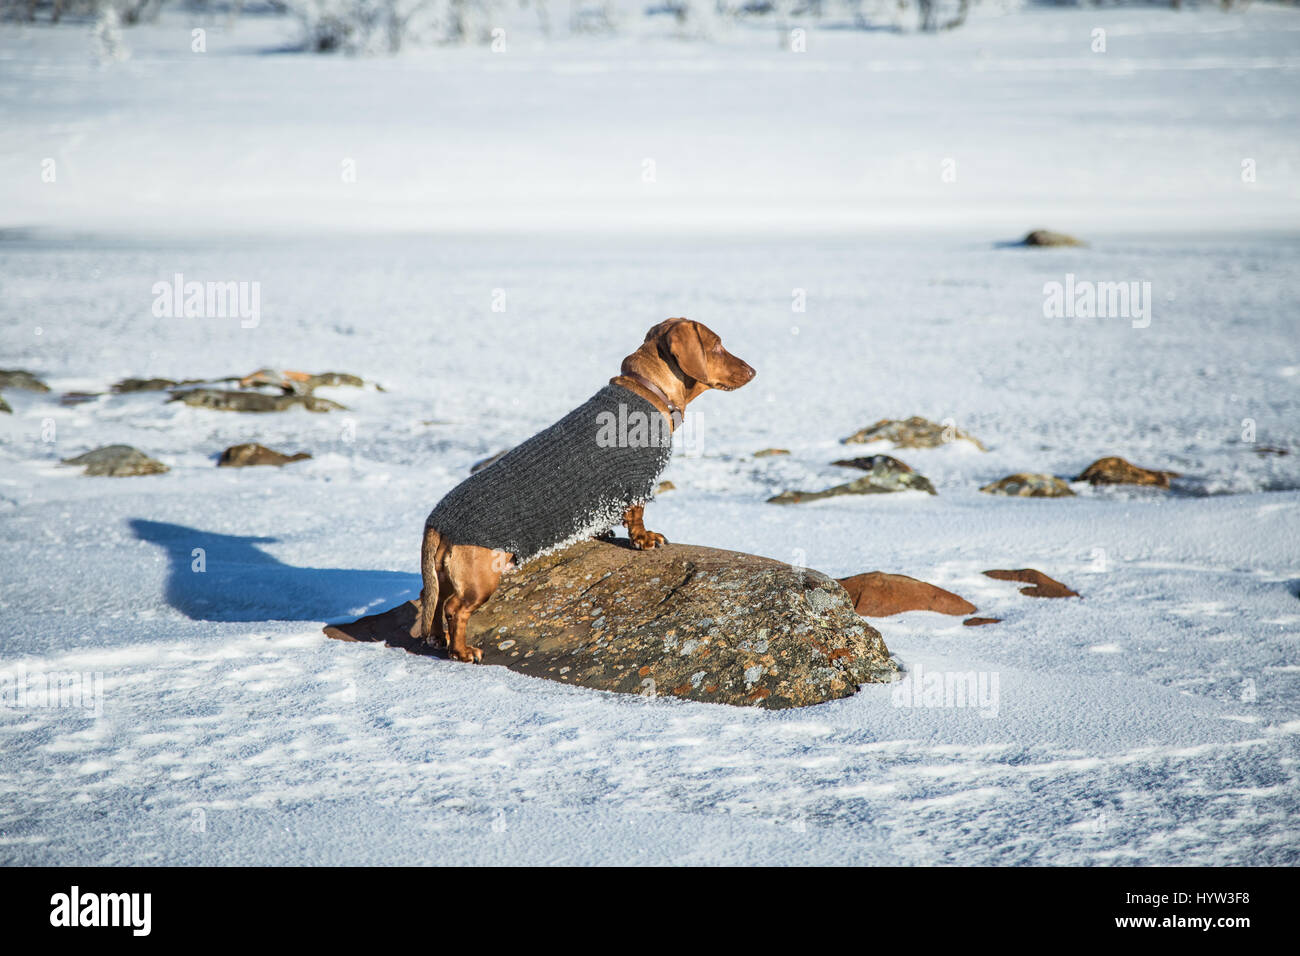 A beautiful brown dachshund dog with a knitted sweater standing on the rock in the snow - Stock Image